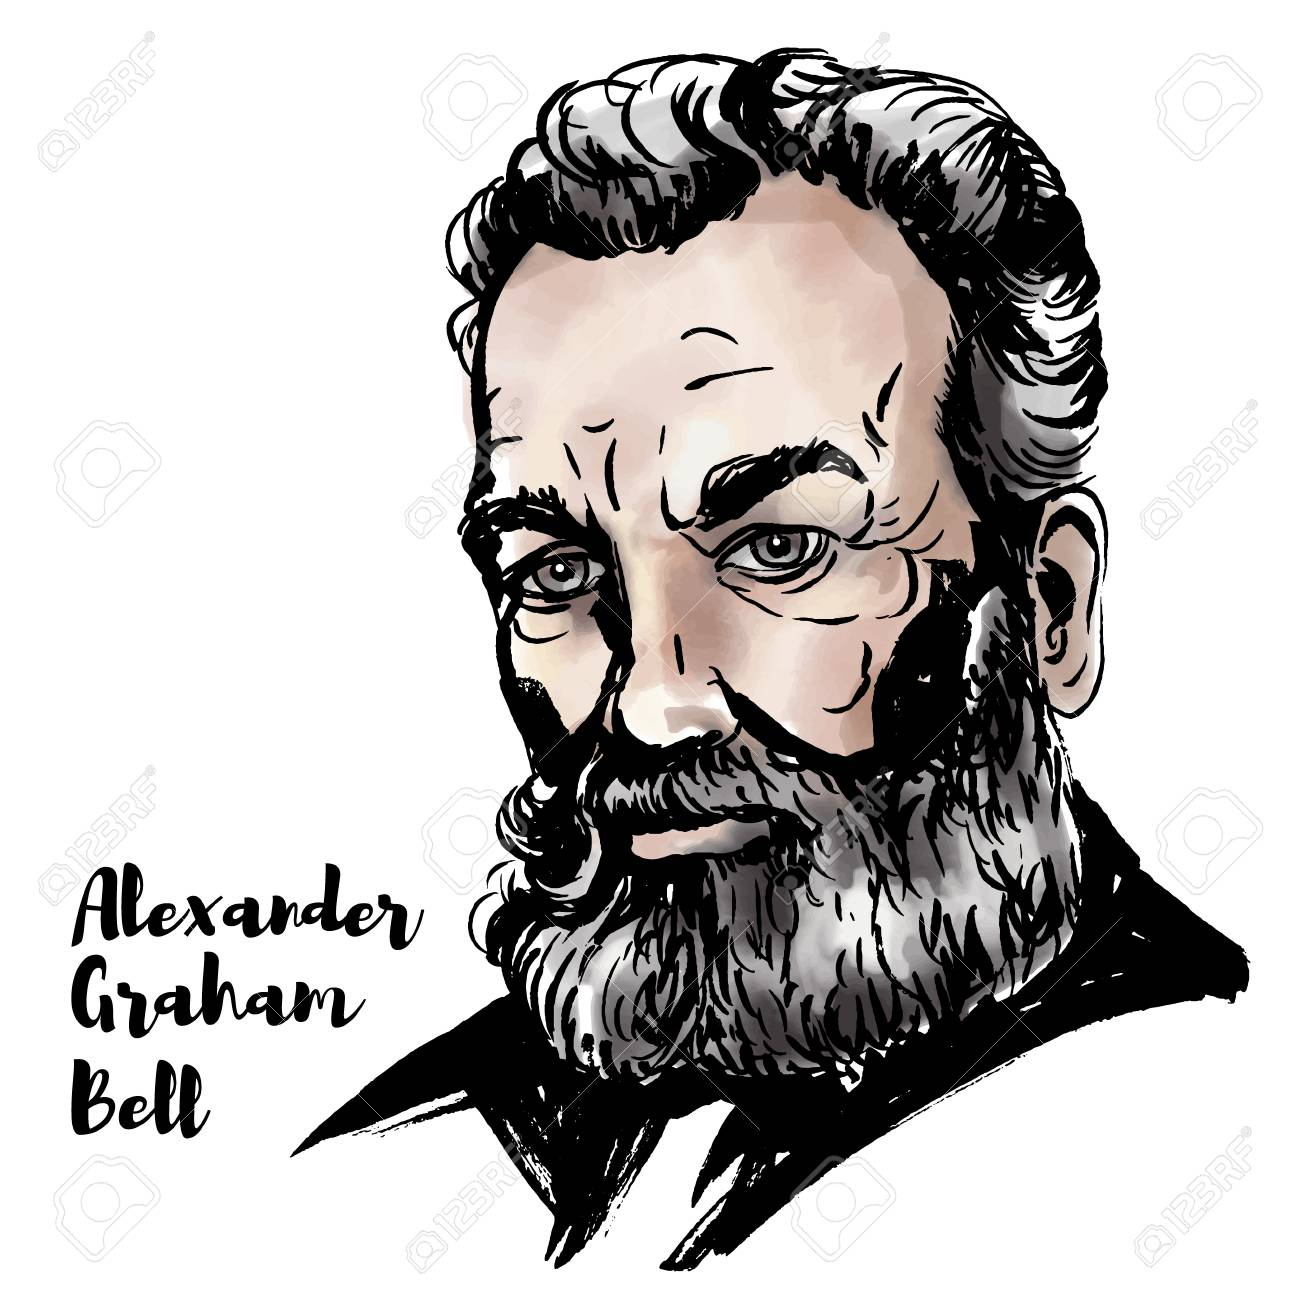 Alexander graham bell watercolor vector portrait with ink contours scottish born scientist inventor